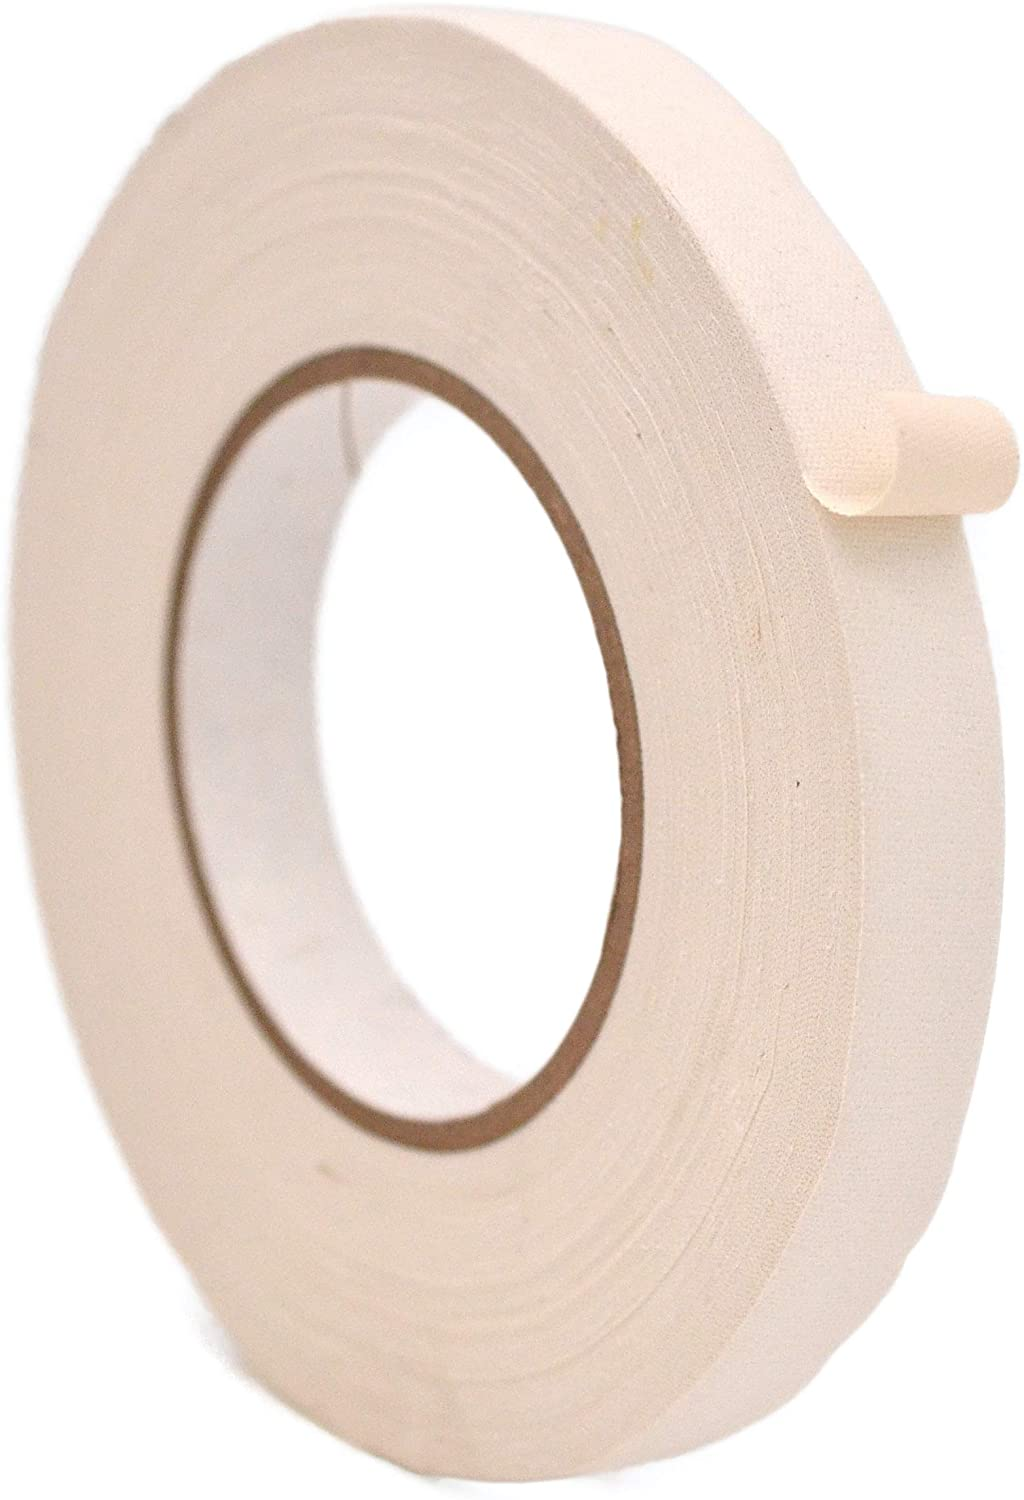 WOD GTMC12 Professional Grade Gaffer Tape, White - 1/2 inch x 50 yds. (96-Rolls) No Sticky Residue, Secures Cables, Non Reflective, Easy to Tear, Gaff Cloth for Trade Shows, Concerts